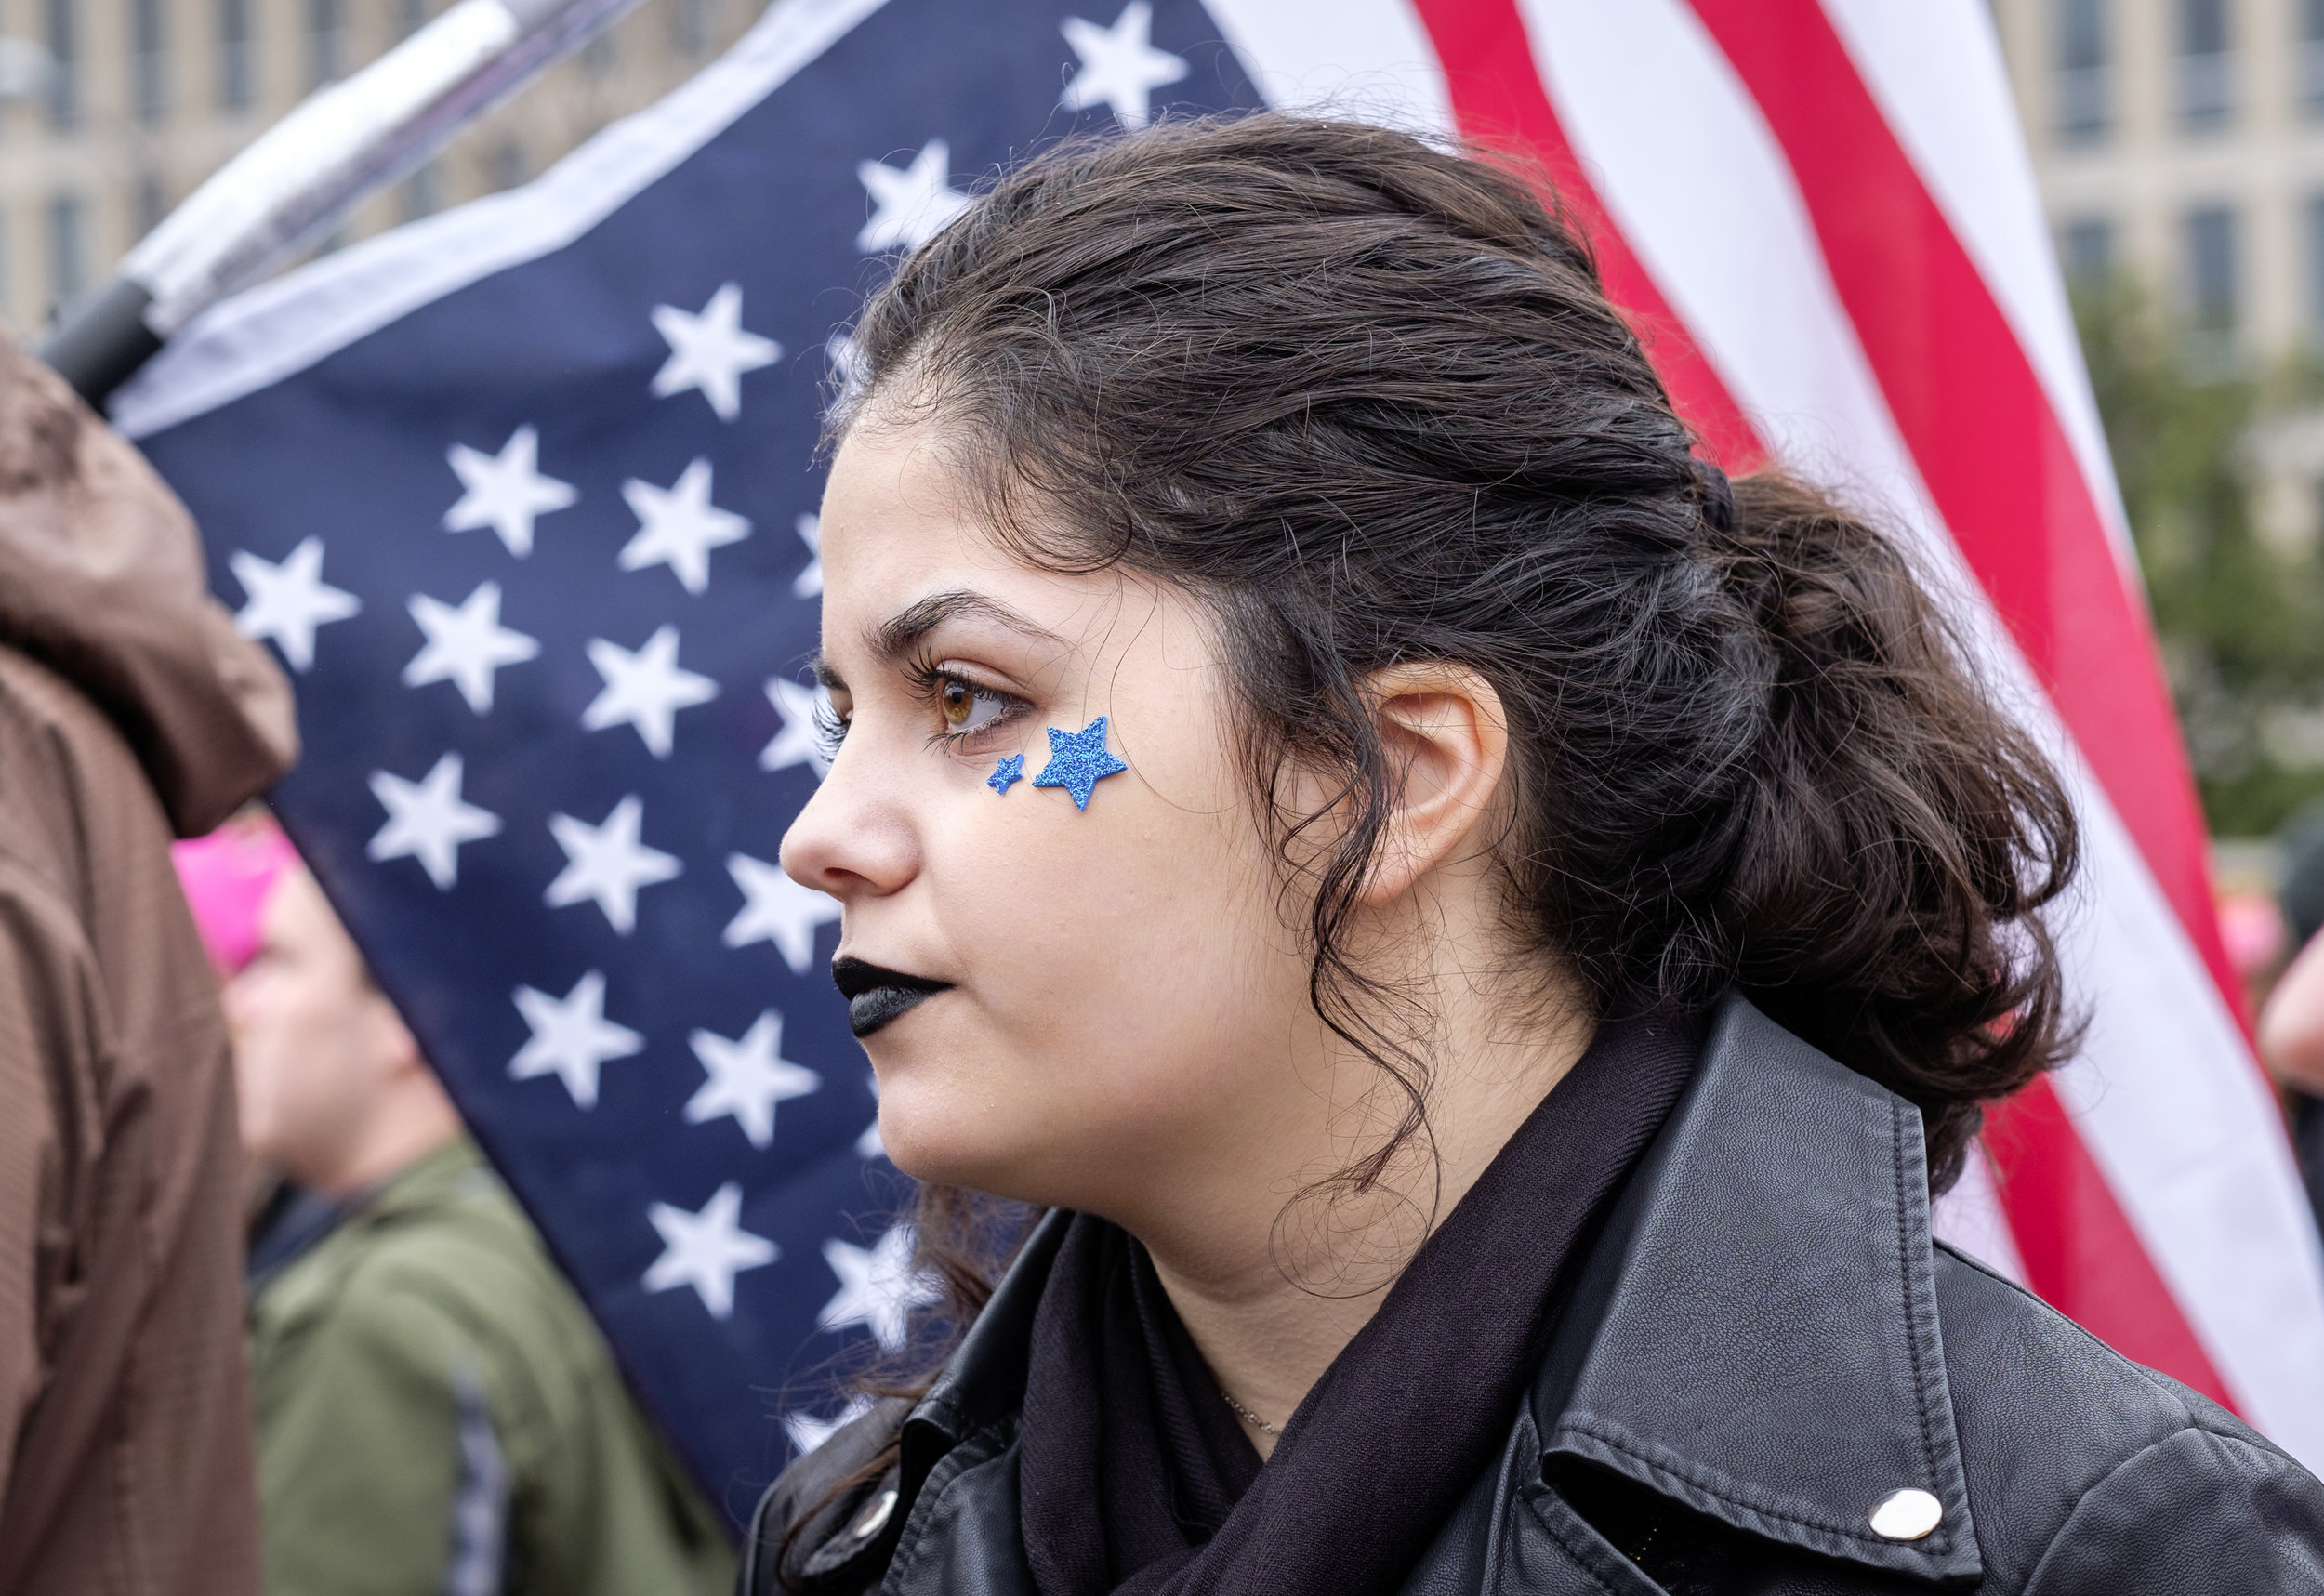 """A woman is seen at the first-ever Women's March on Washington on Saturday, January 21, 2017. It is estimated that over 500,000 marched, and well over 1 million people world-wide. People came together to proclaim unity and to stand firm on the principles of human rights. """"Women's Rights are Human Rights and Human Rights are Women's Rights."""""""